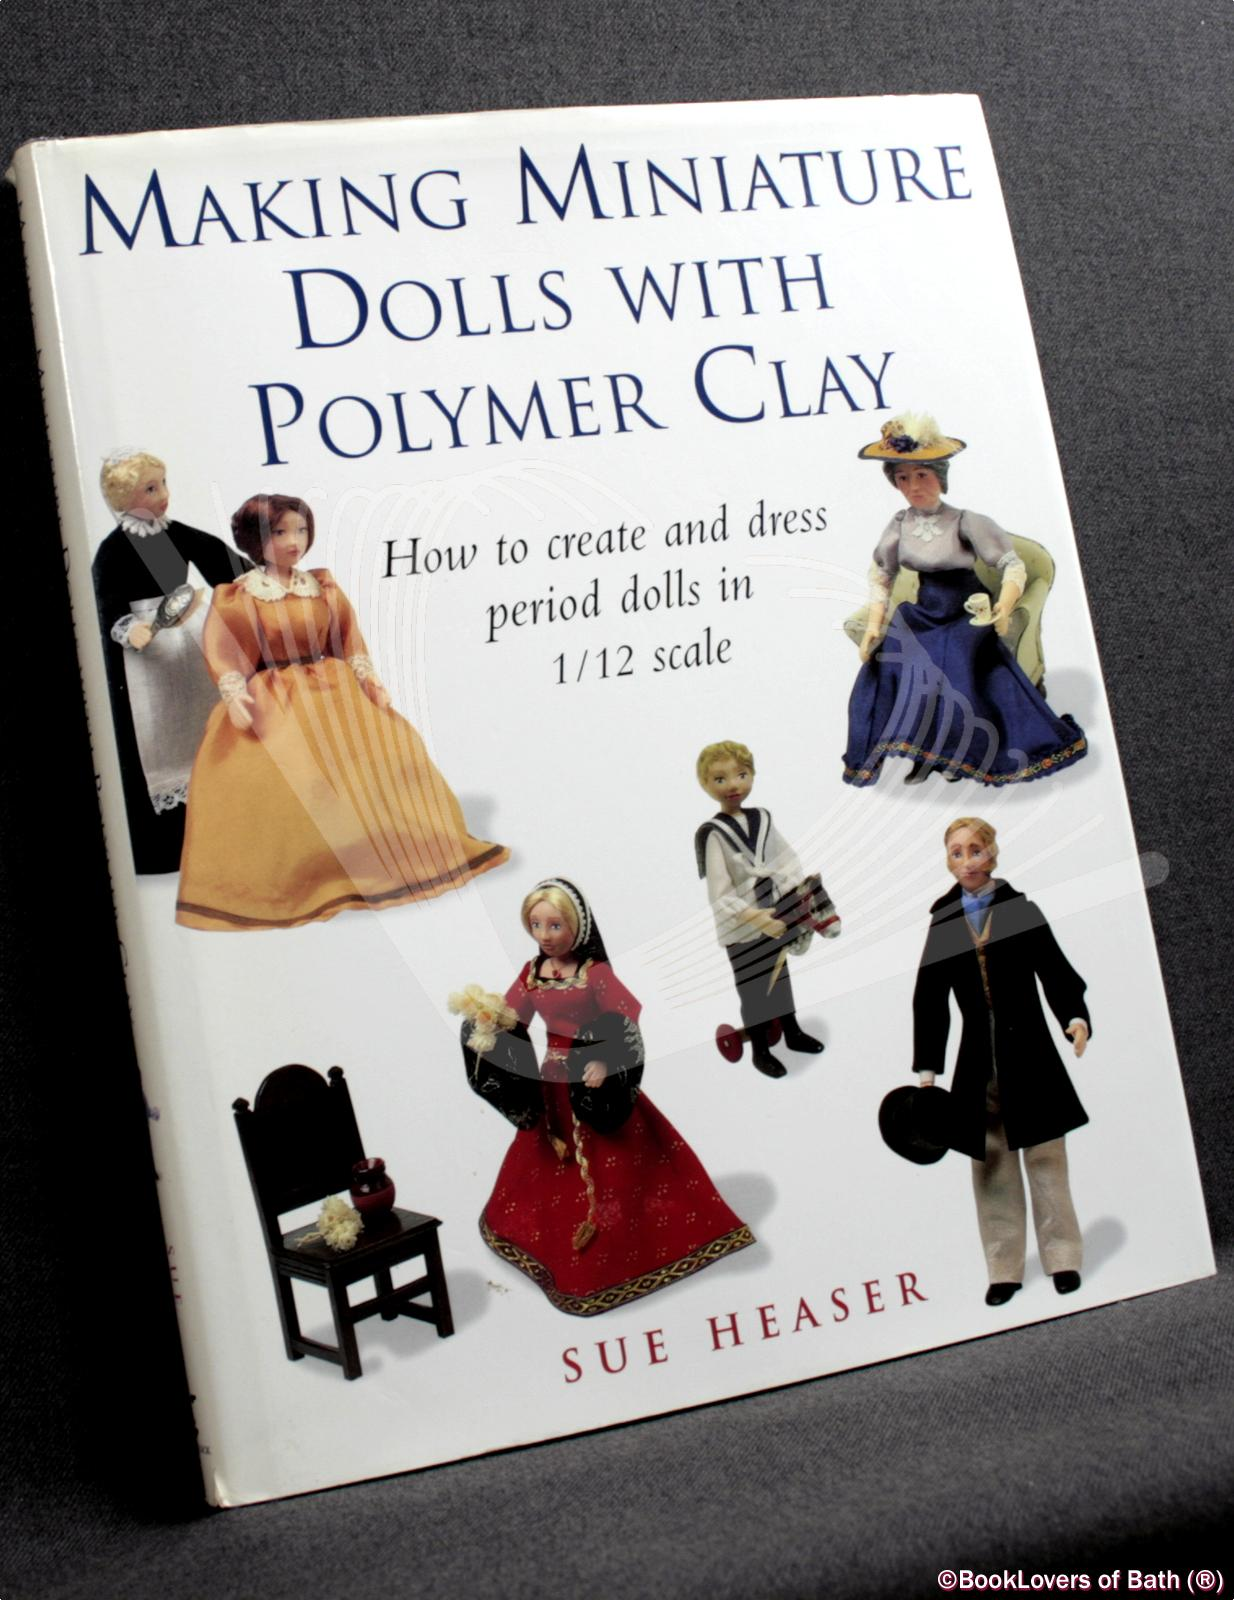 Making Miniature Dolls with Polymer Clay: How to Create and Dress Period Dolls in 1/12 Scale - Sue Heaser